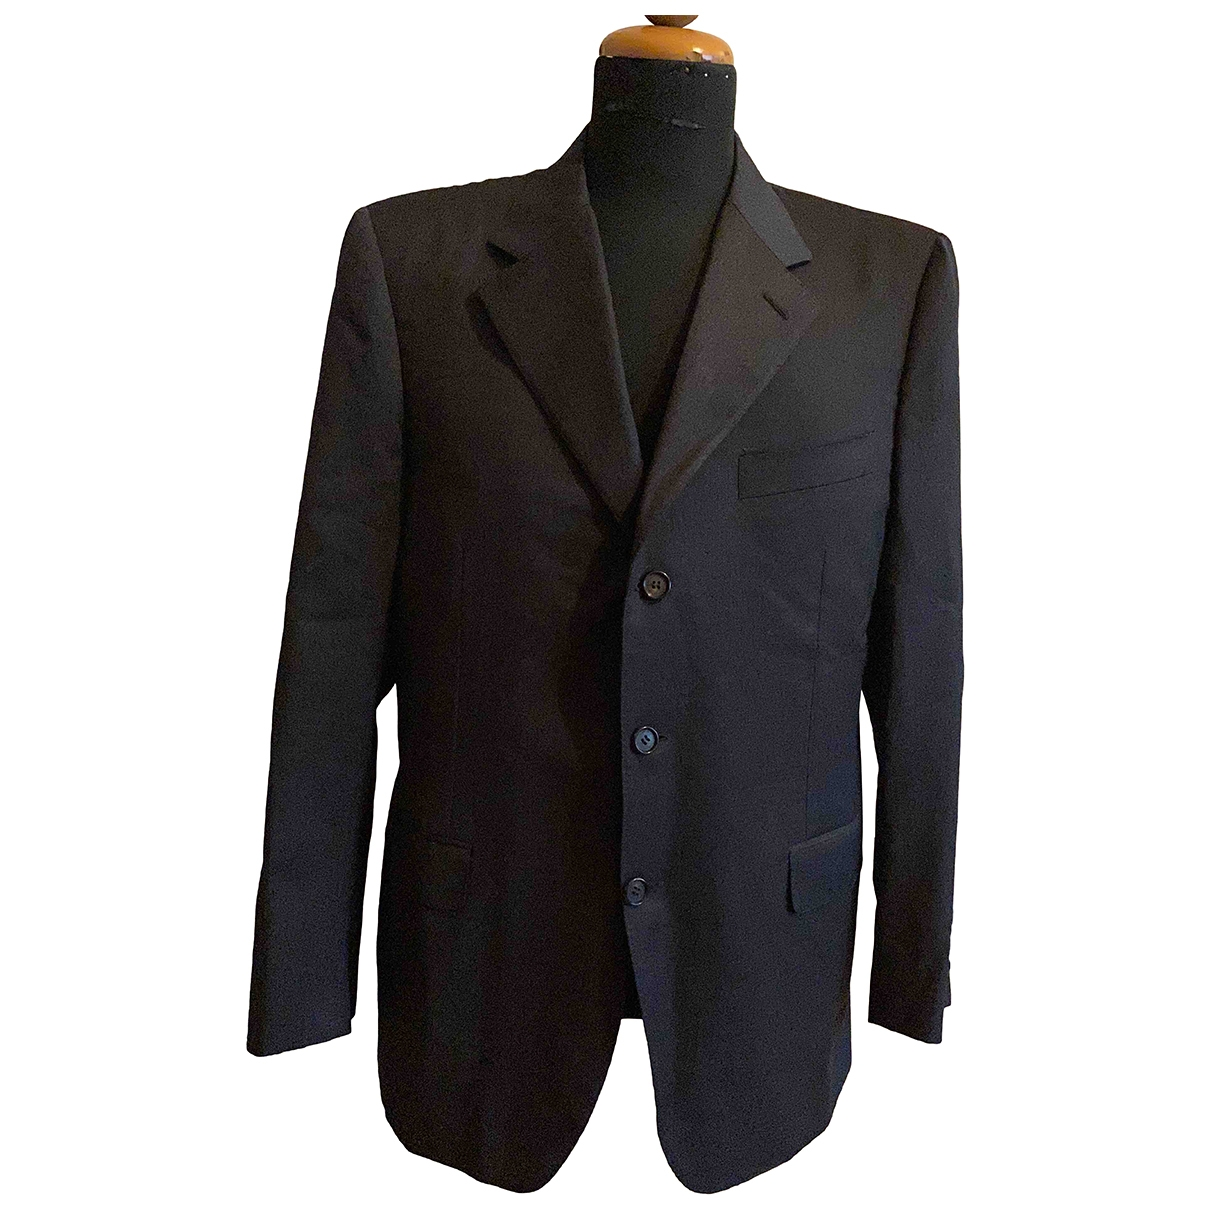 Lanvin \N Anthracite Wool jacket  for Men 50 IT